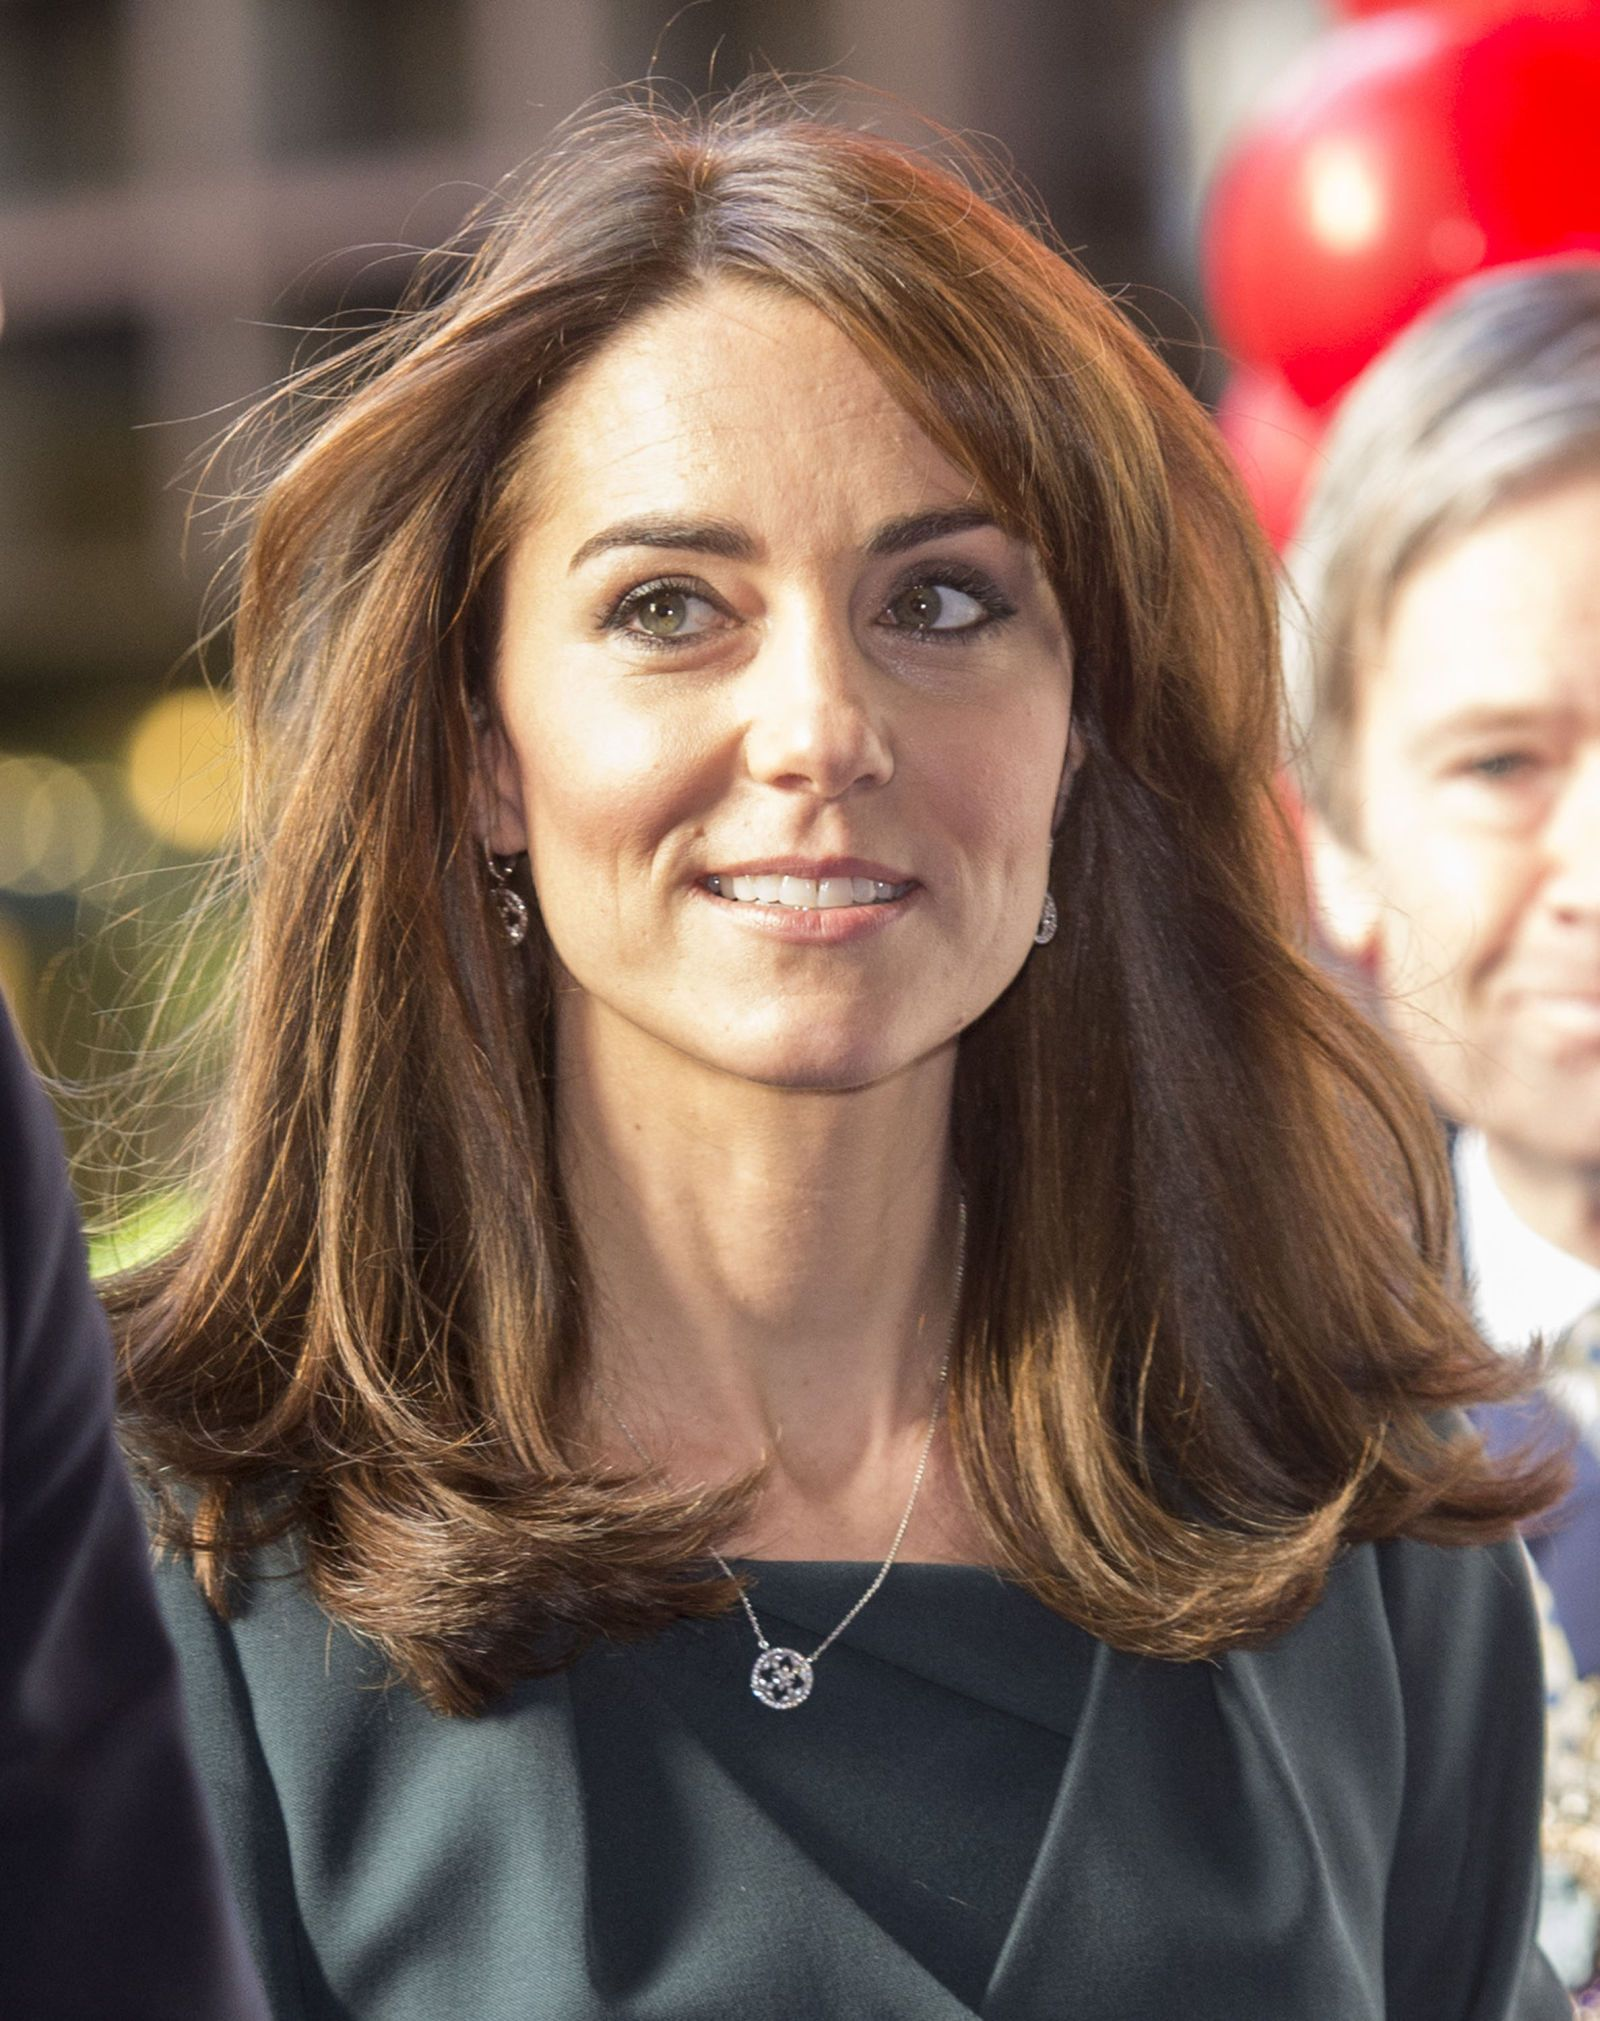 Kate Middleton Just Cut Her Hair And People Are Freaking Out forecast